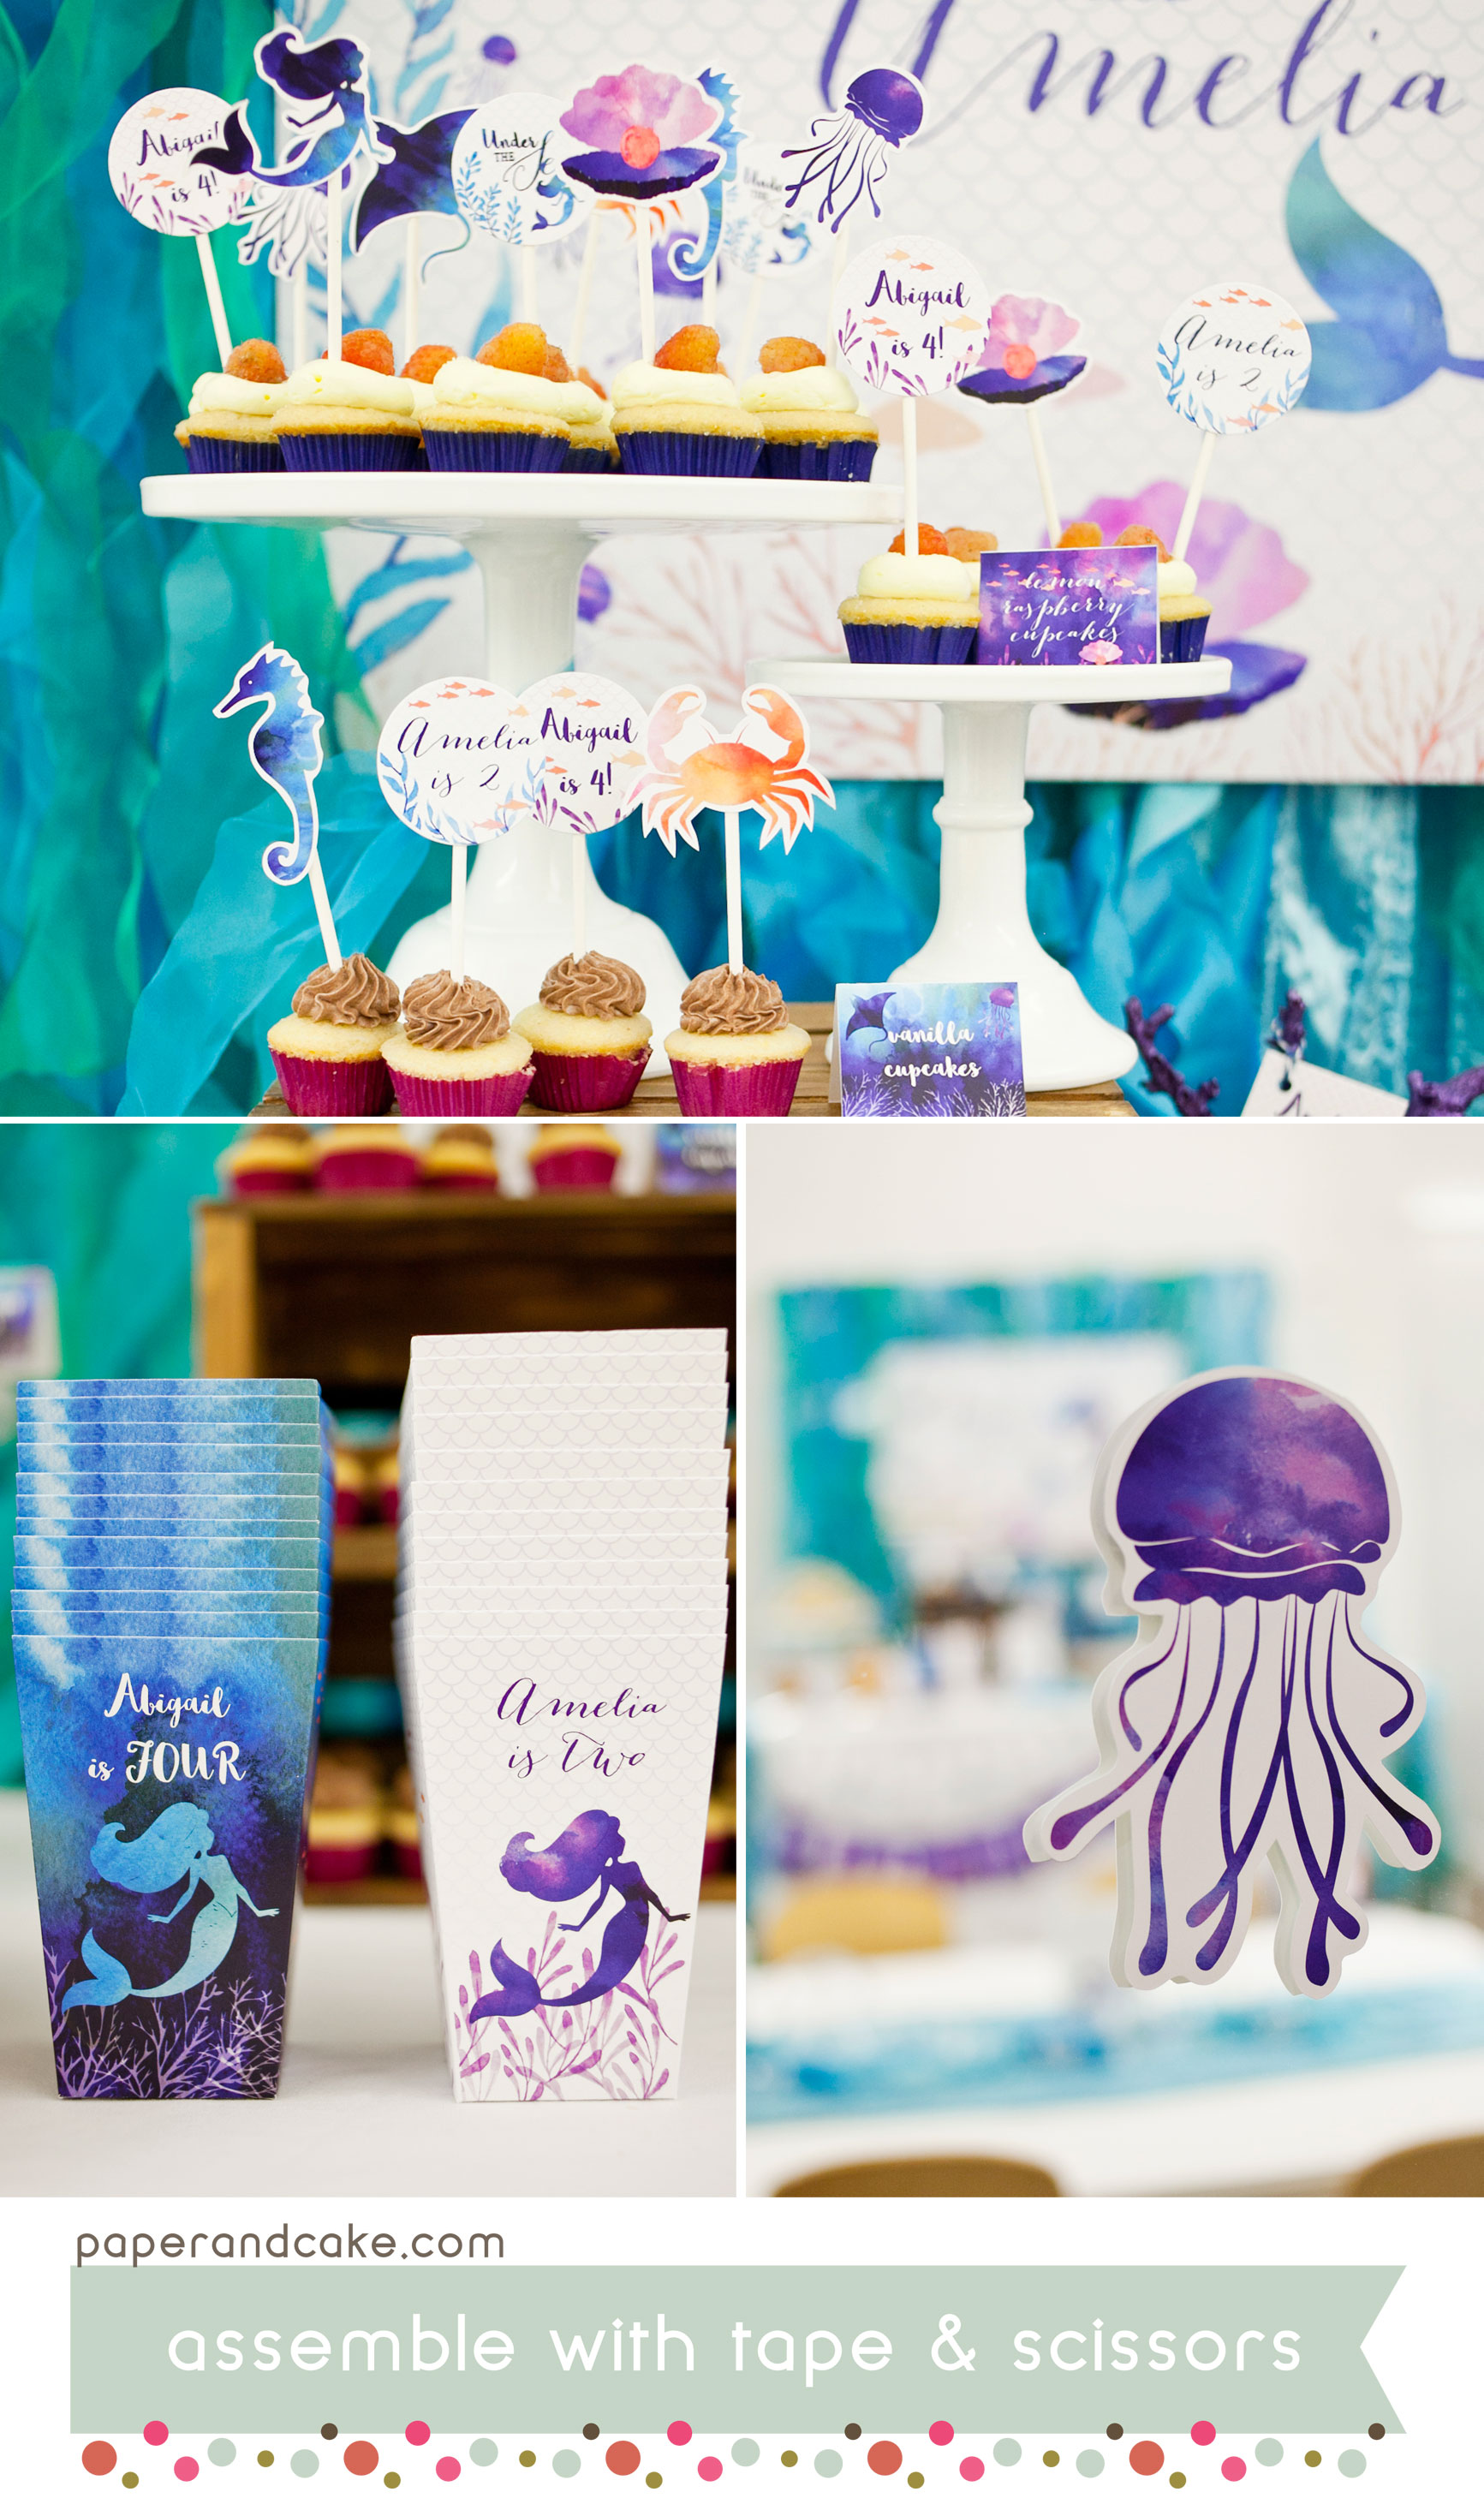 photograph about Under the Sea Printable named Mermaid Underneath the Sea printable birthday bash